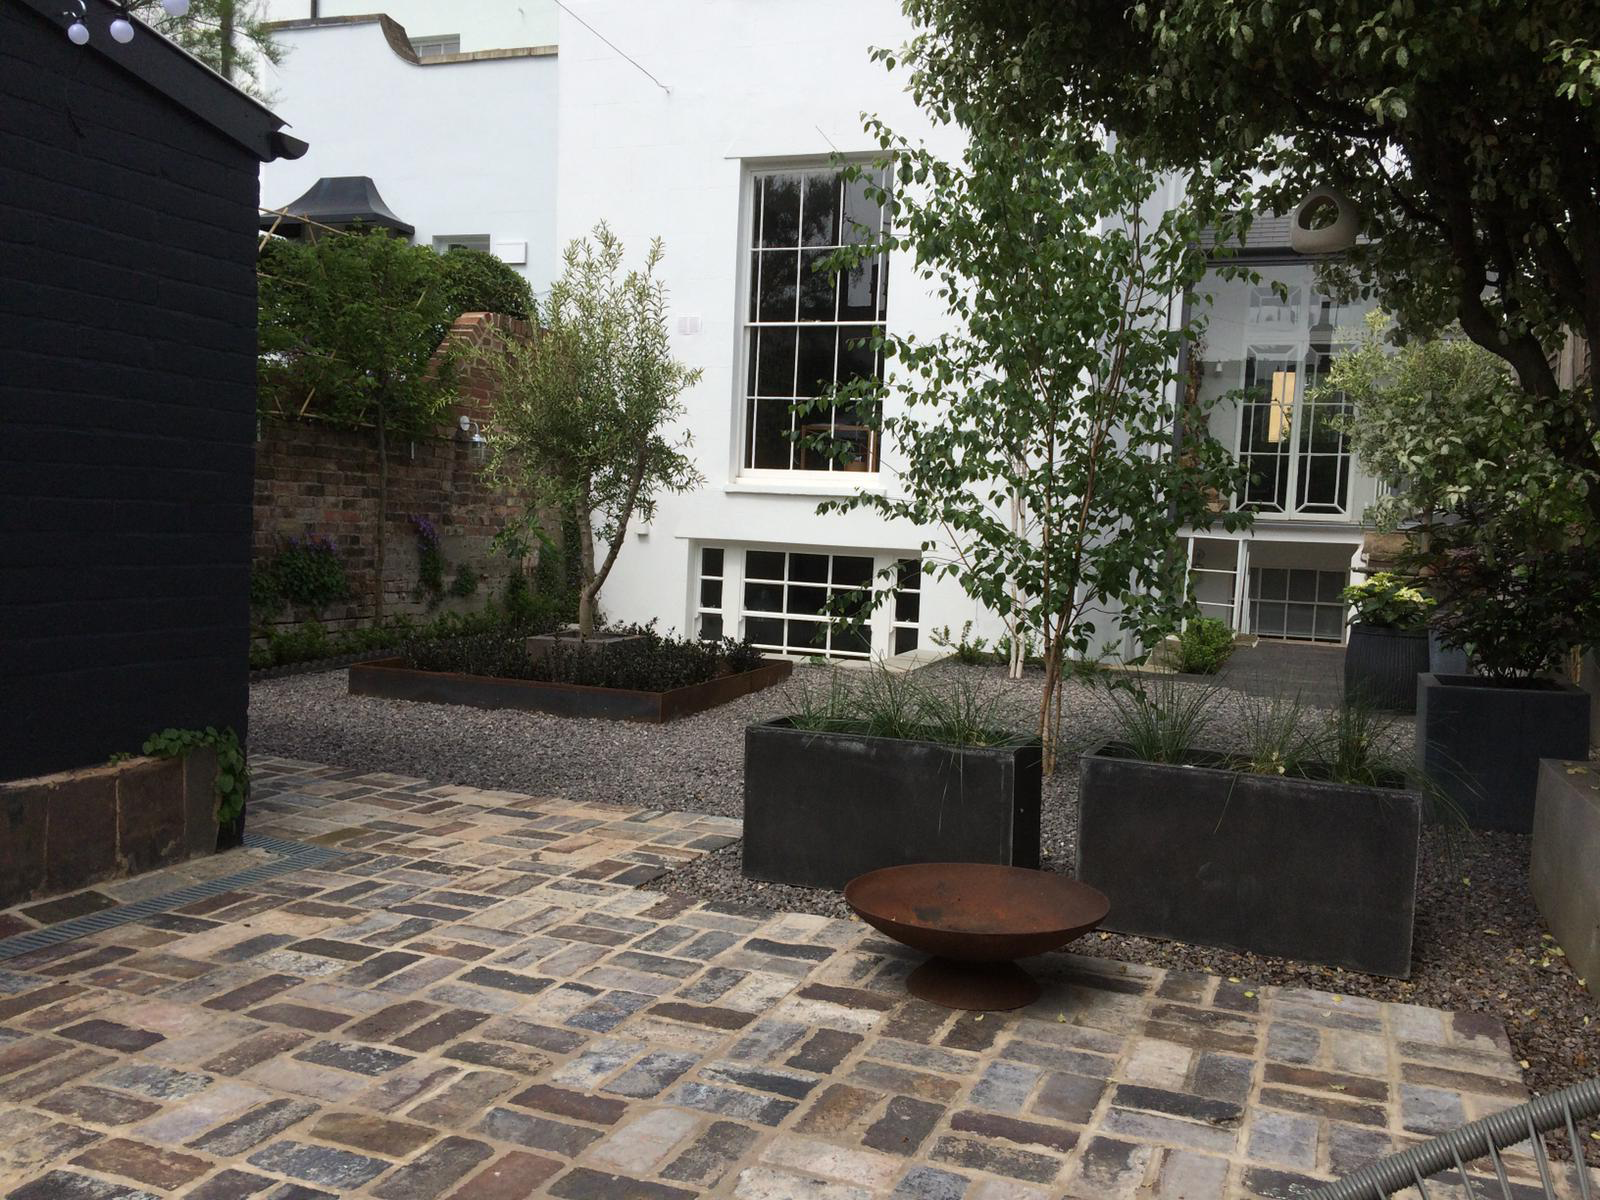 Period property landscaping